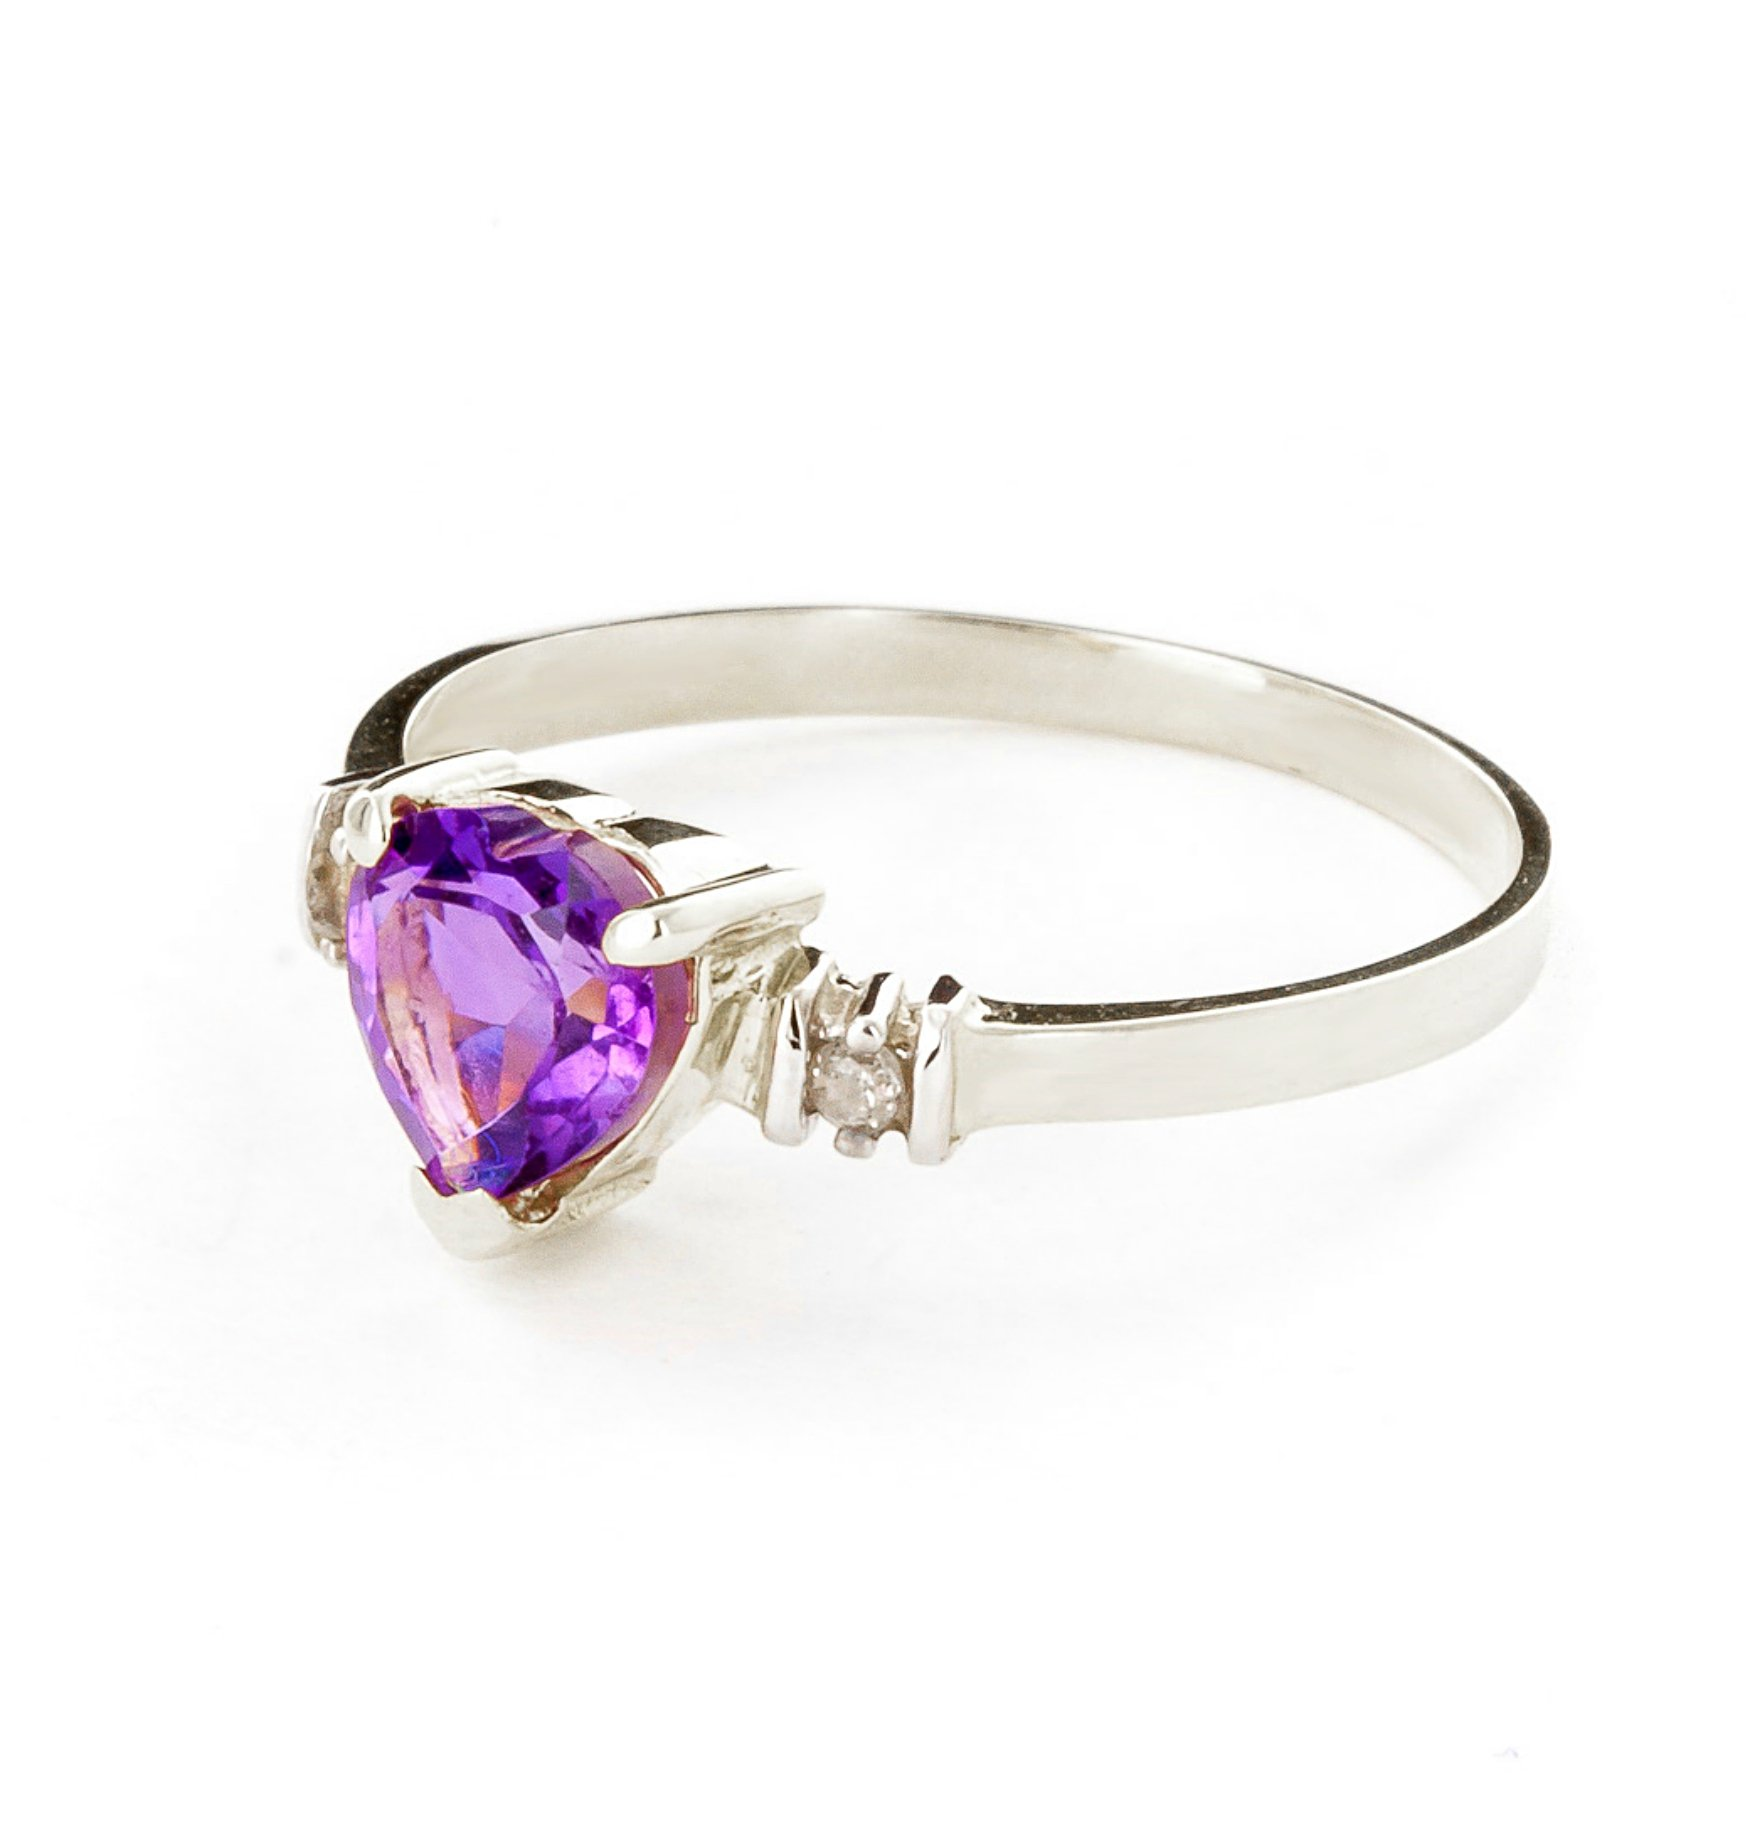 14k White Gold Ring with Genuine Diamonds and Natural Heart-shaped Purple Amethyst - Size 10.0 by Galaxy Gold (Image #2)